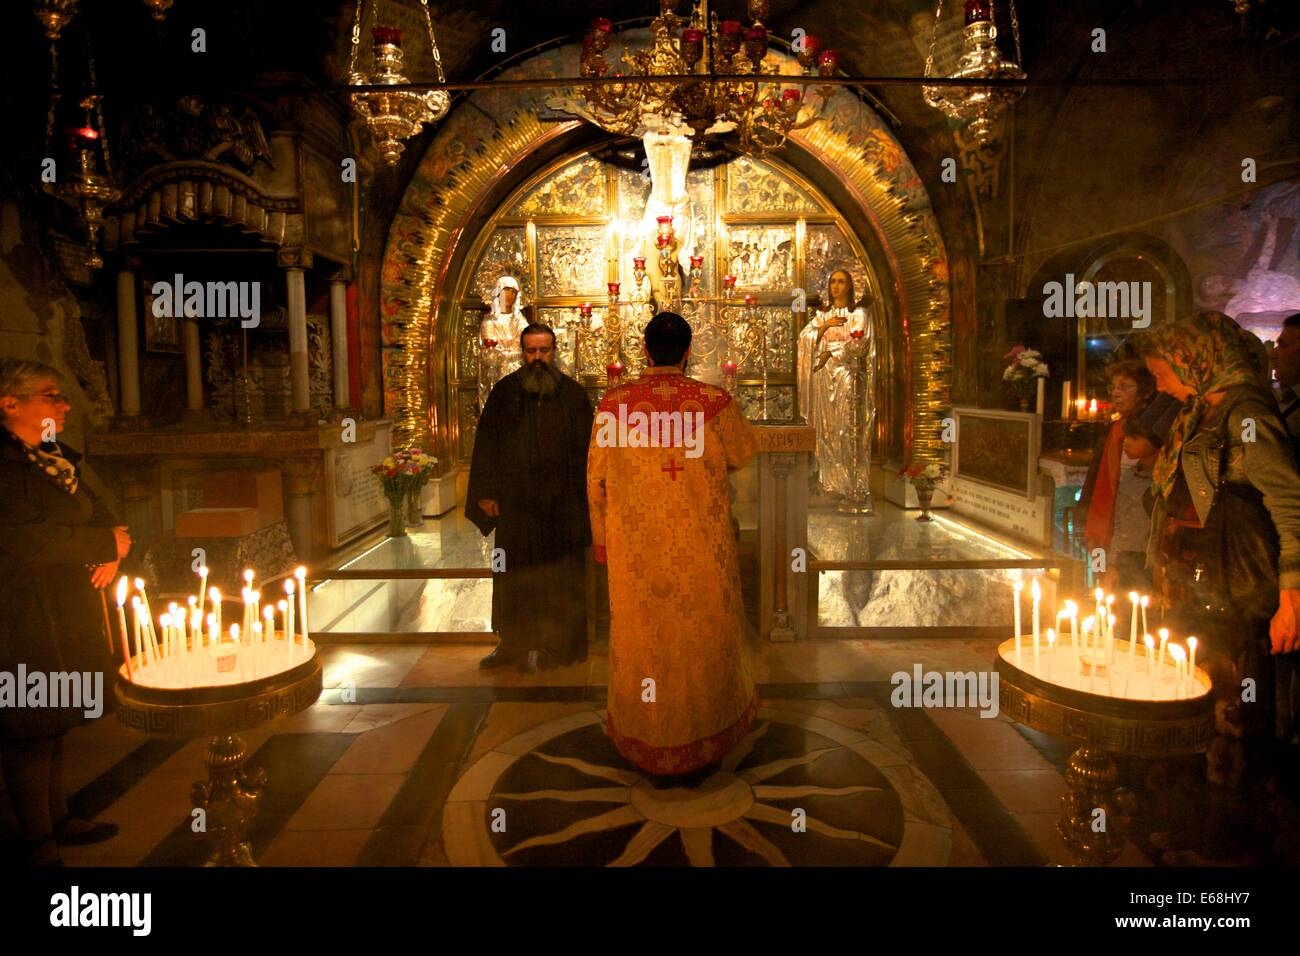 Golgotha, Church Of The Holy Sepulchre, Jerusalem, Israel, Middle East Stock Photo